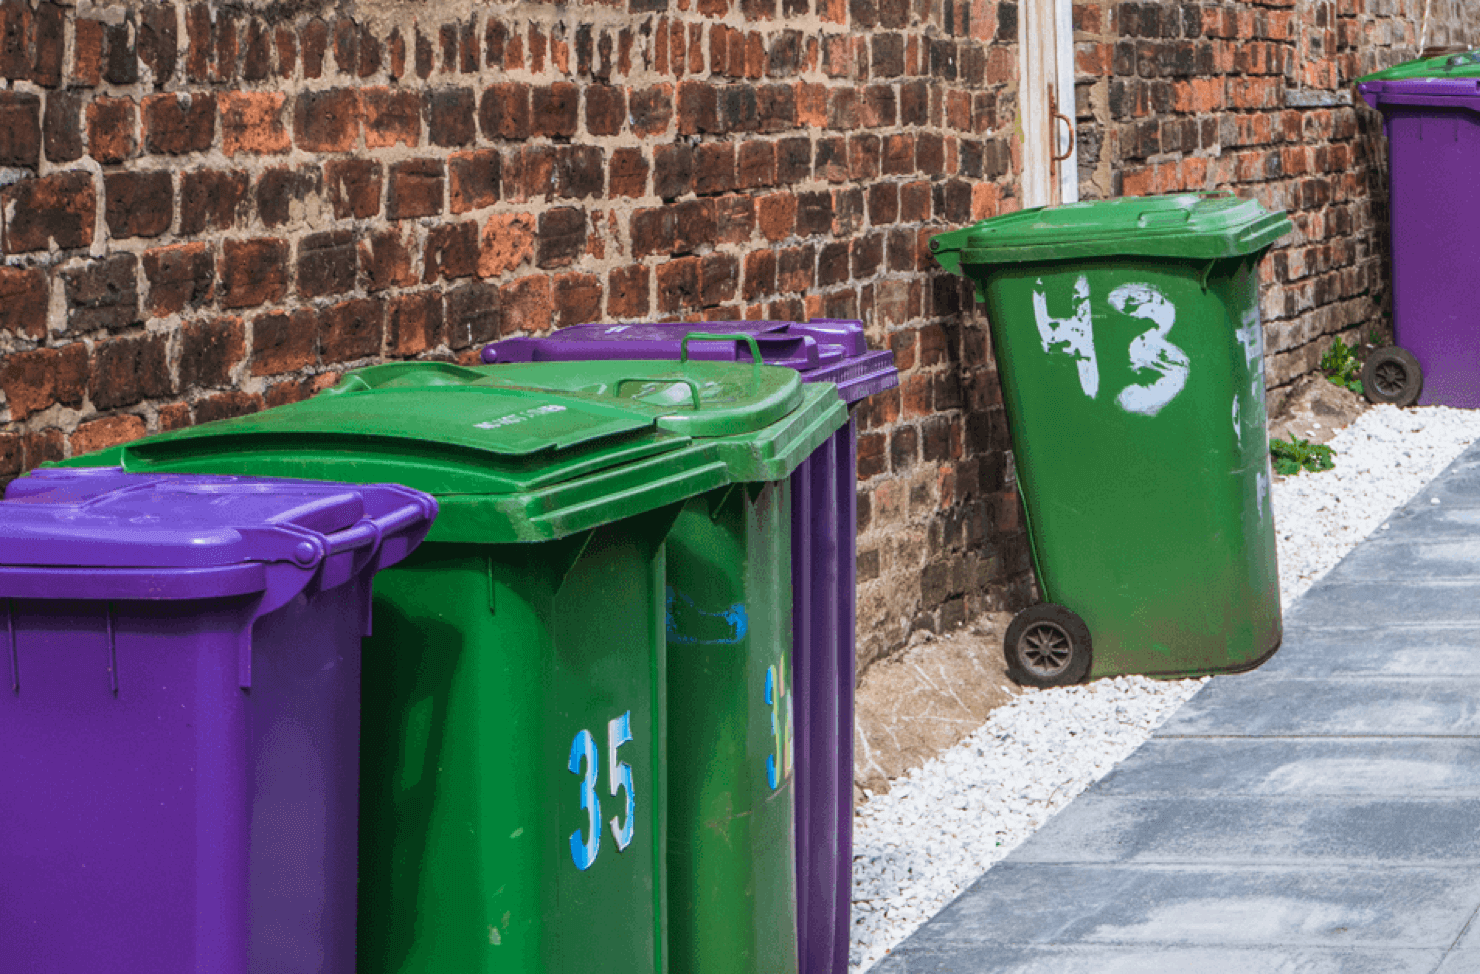 Affordable bin collections